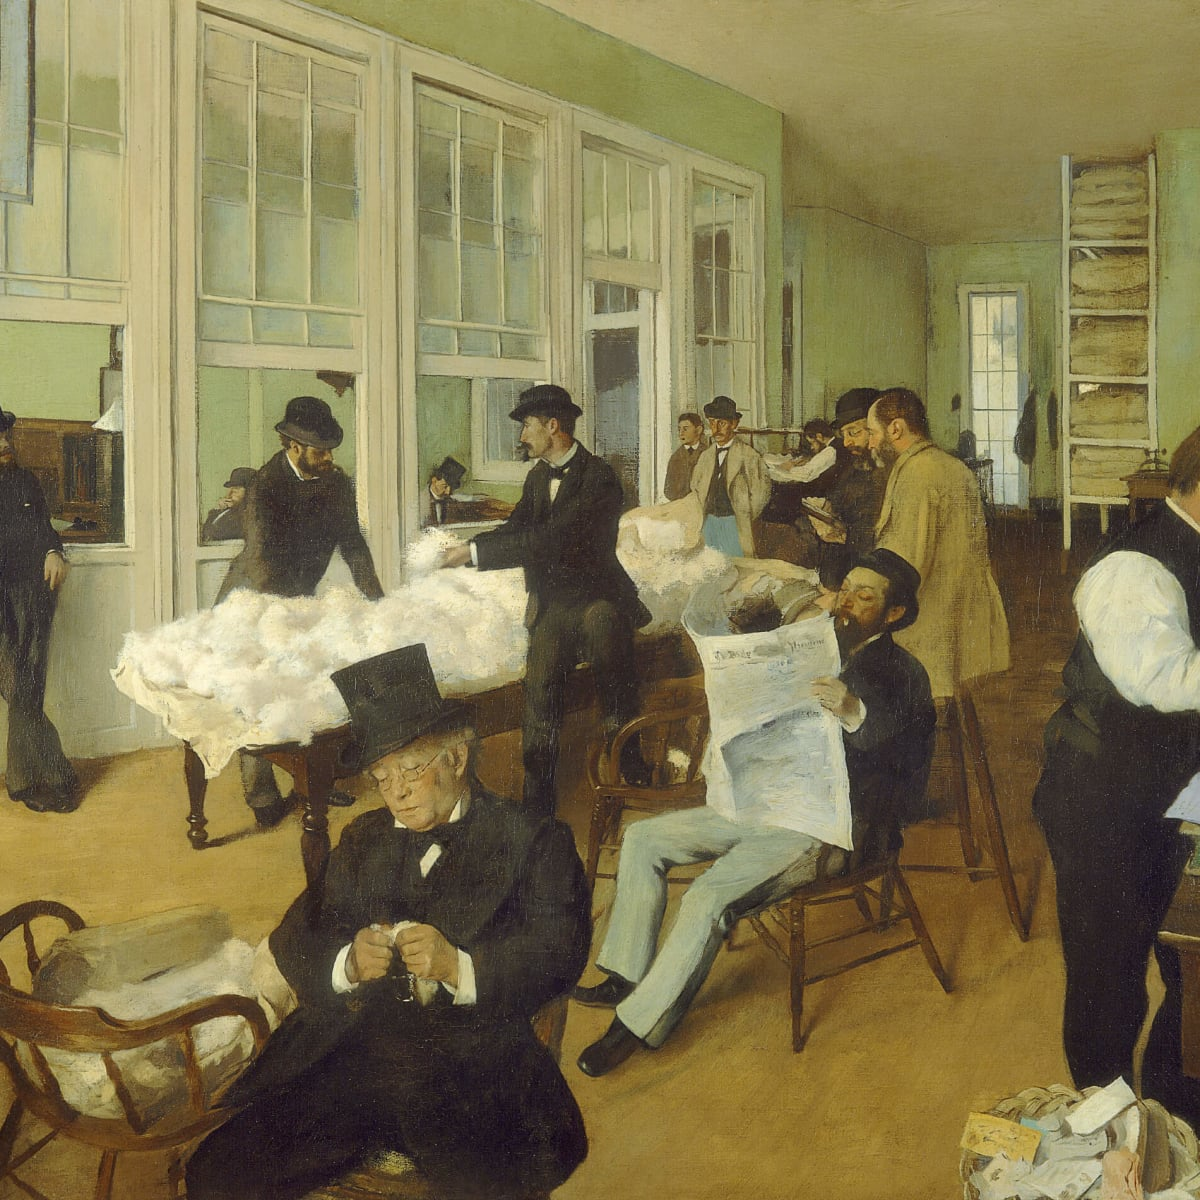 Edgar Degas, A Cotton Office in New Orleans, 1873, oil on canvas, Musée des Beaux-Arts de Pau, France